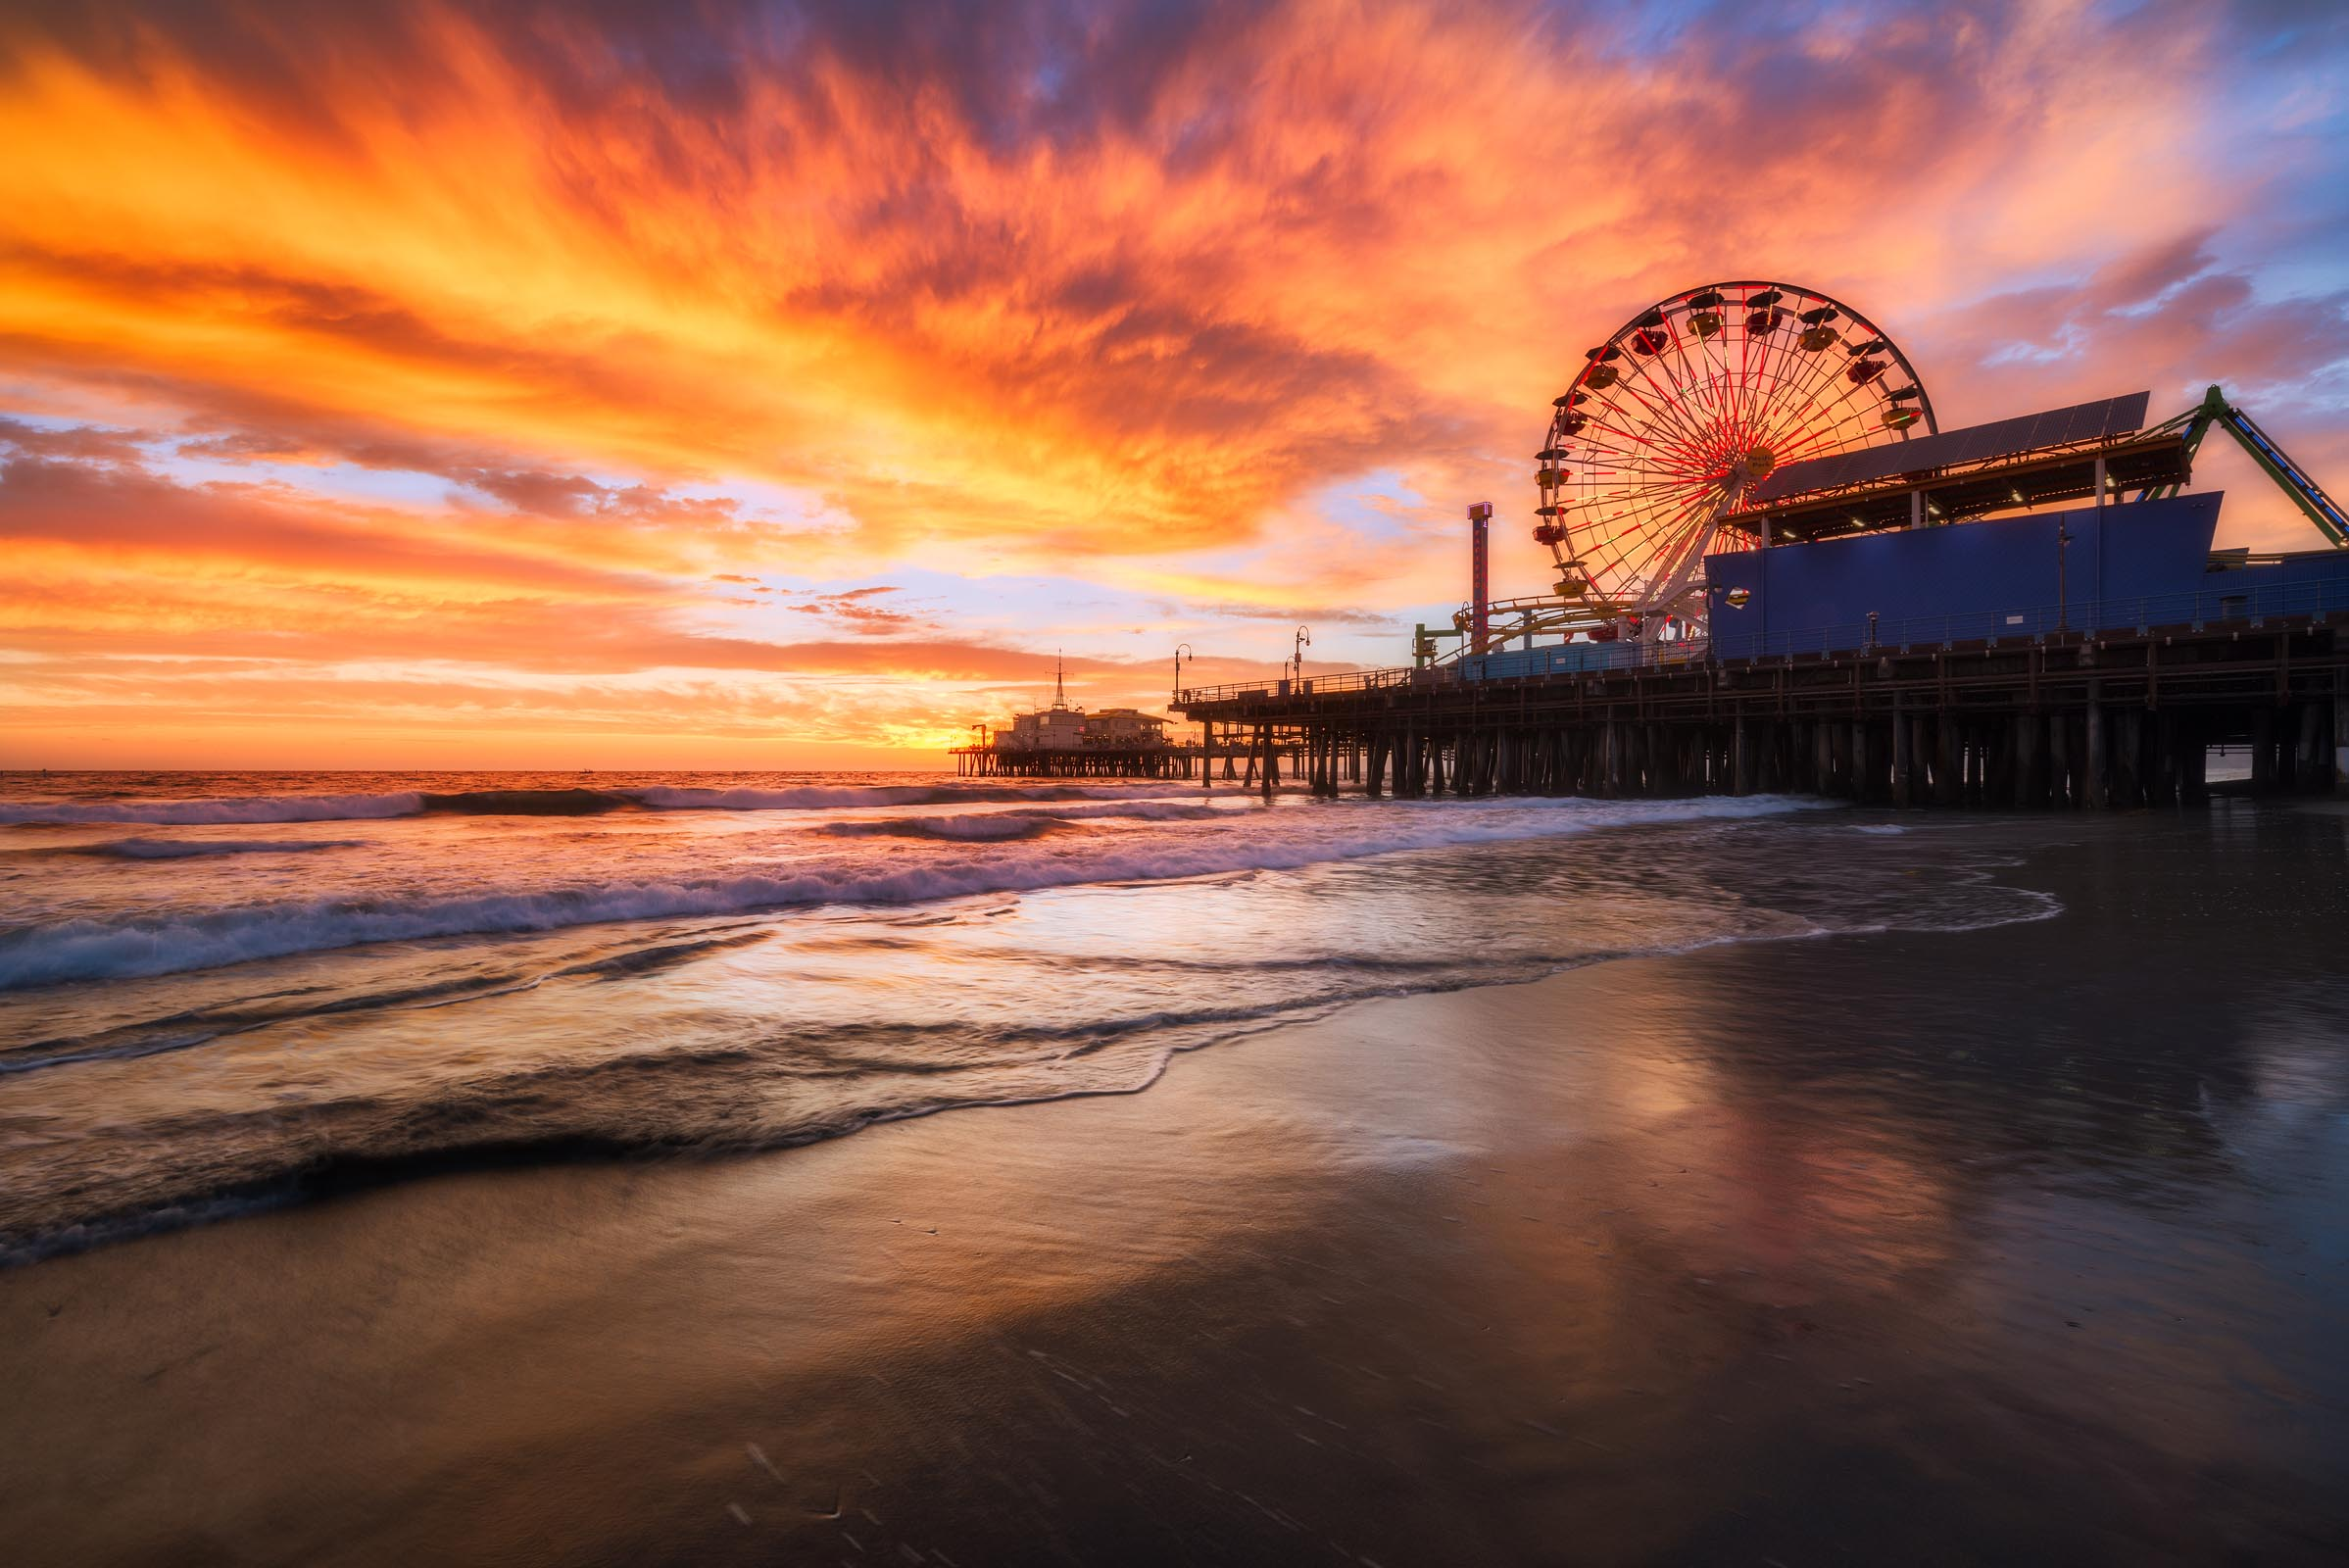 Photograph of Santa Monica Pier in Santa Monica, California by Brent Goldman Photography